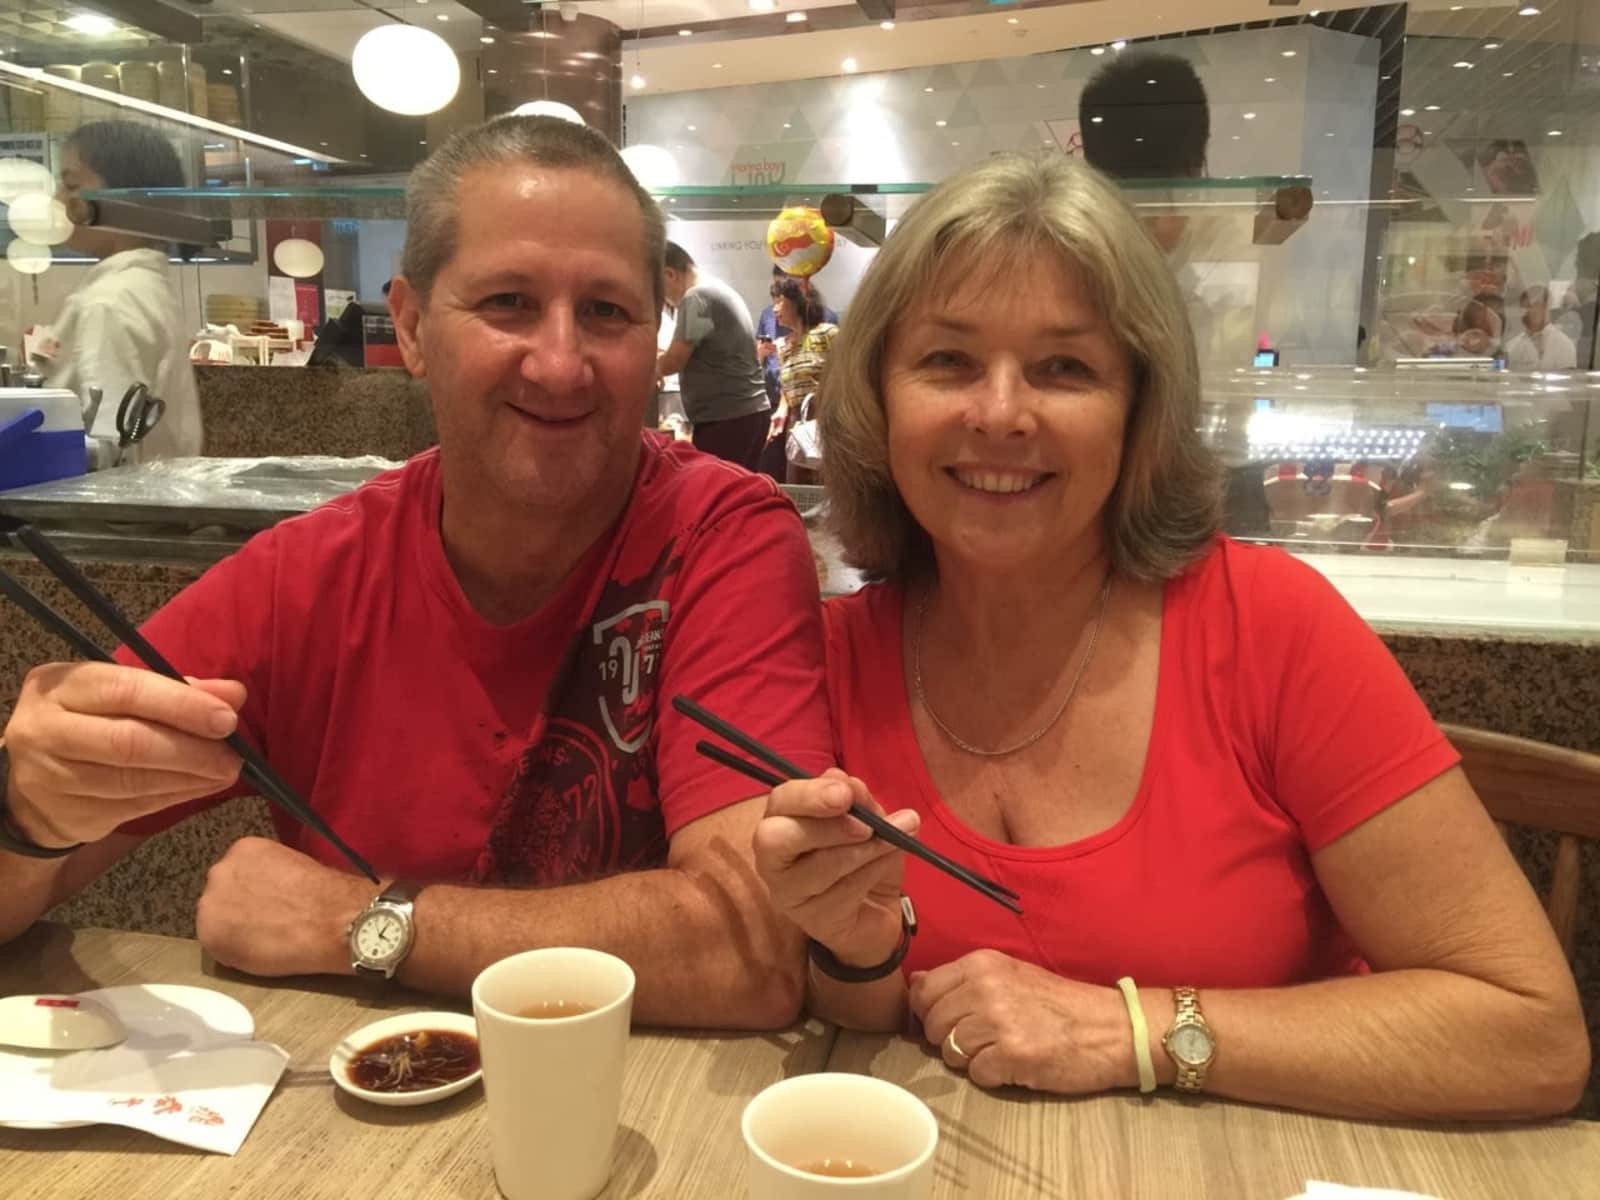 Kathy & Steve from Cooroy, Queensland, Australia